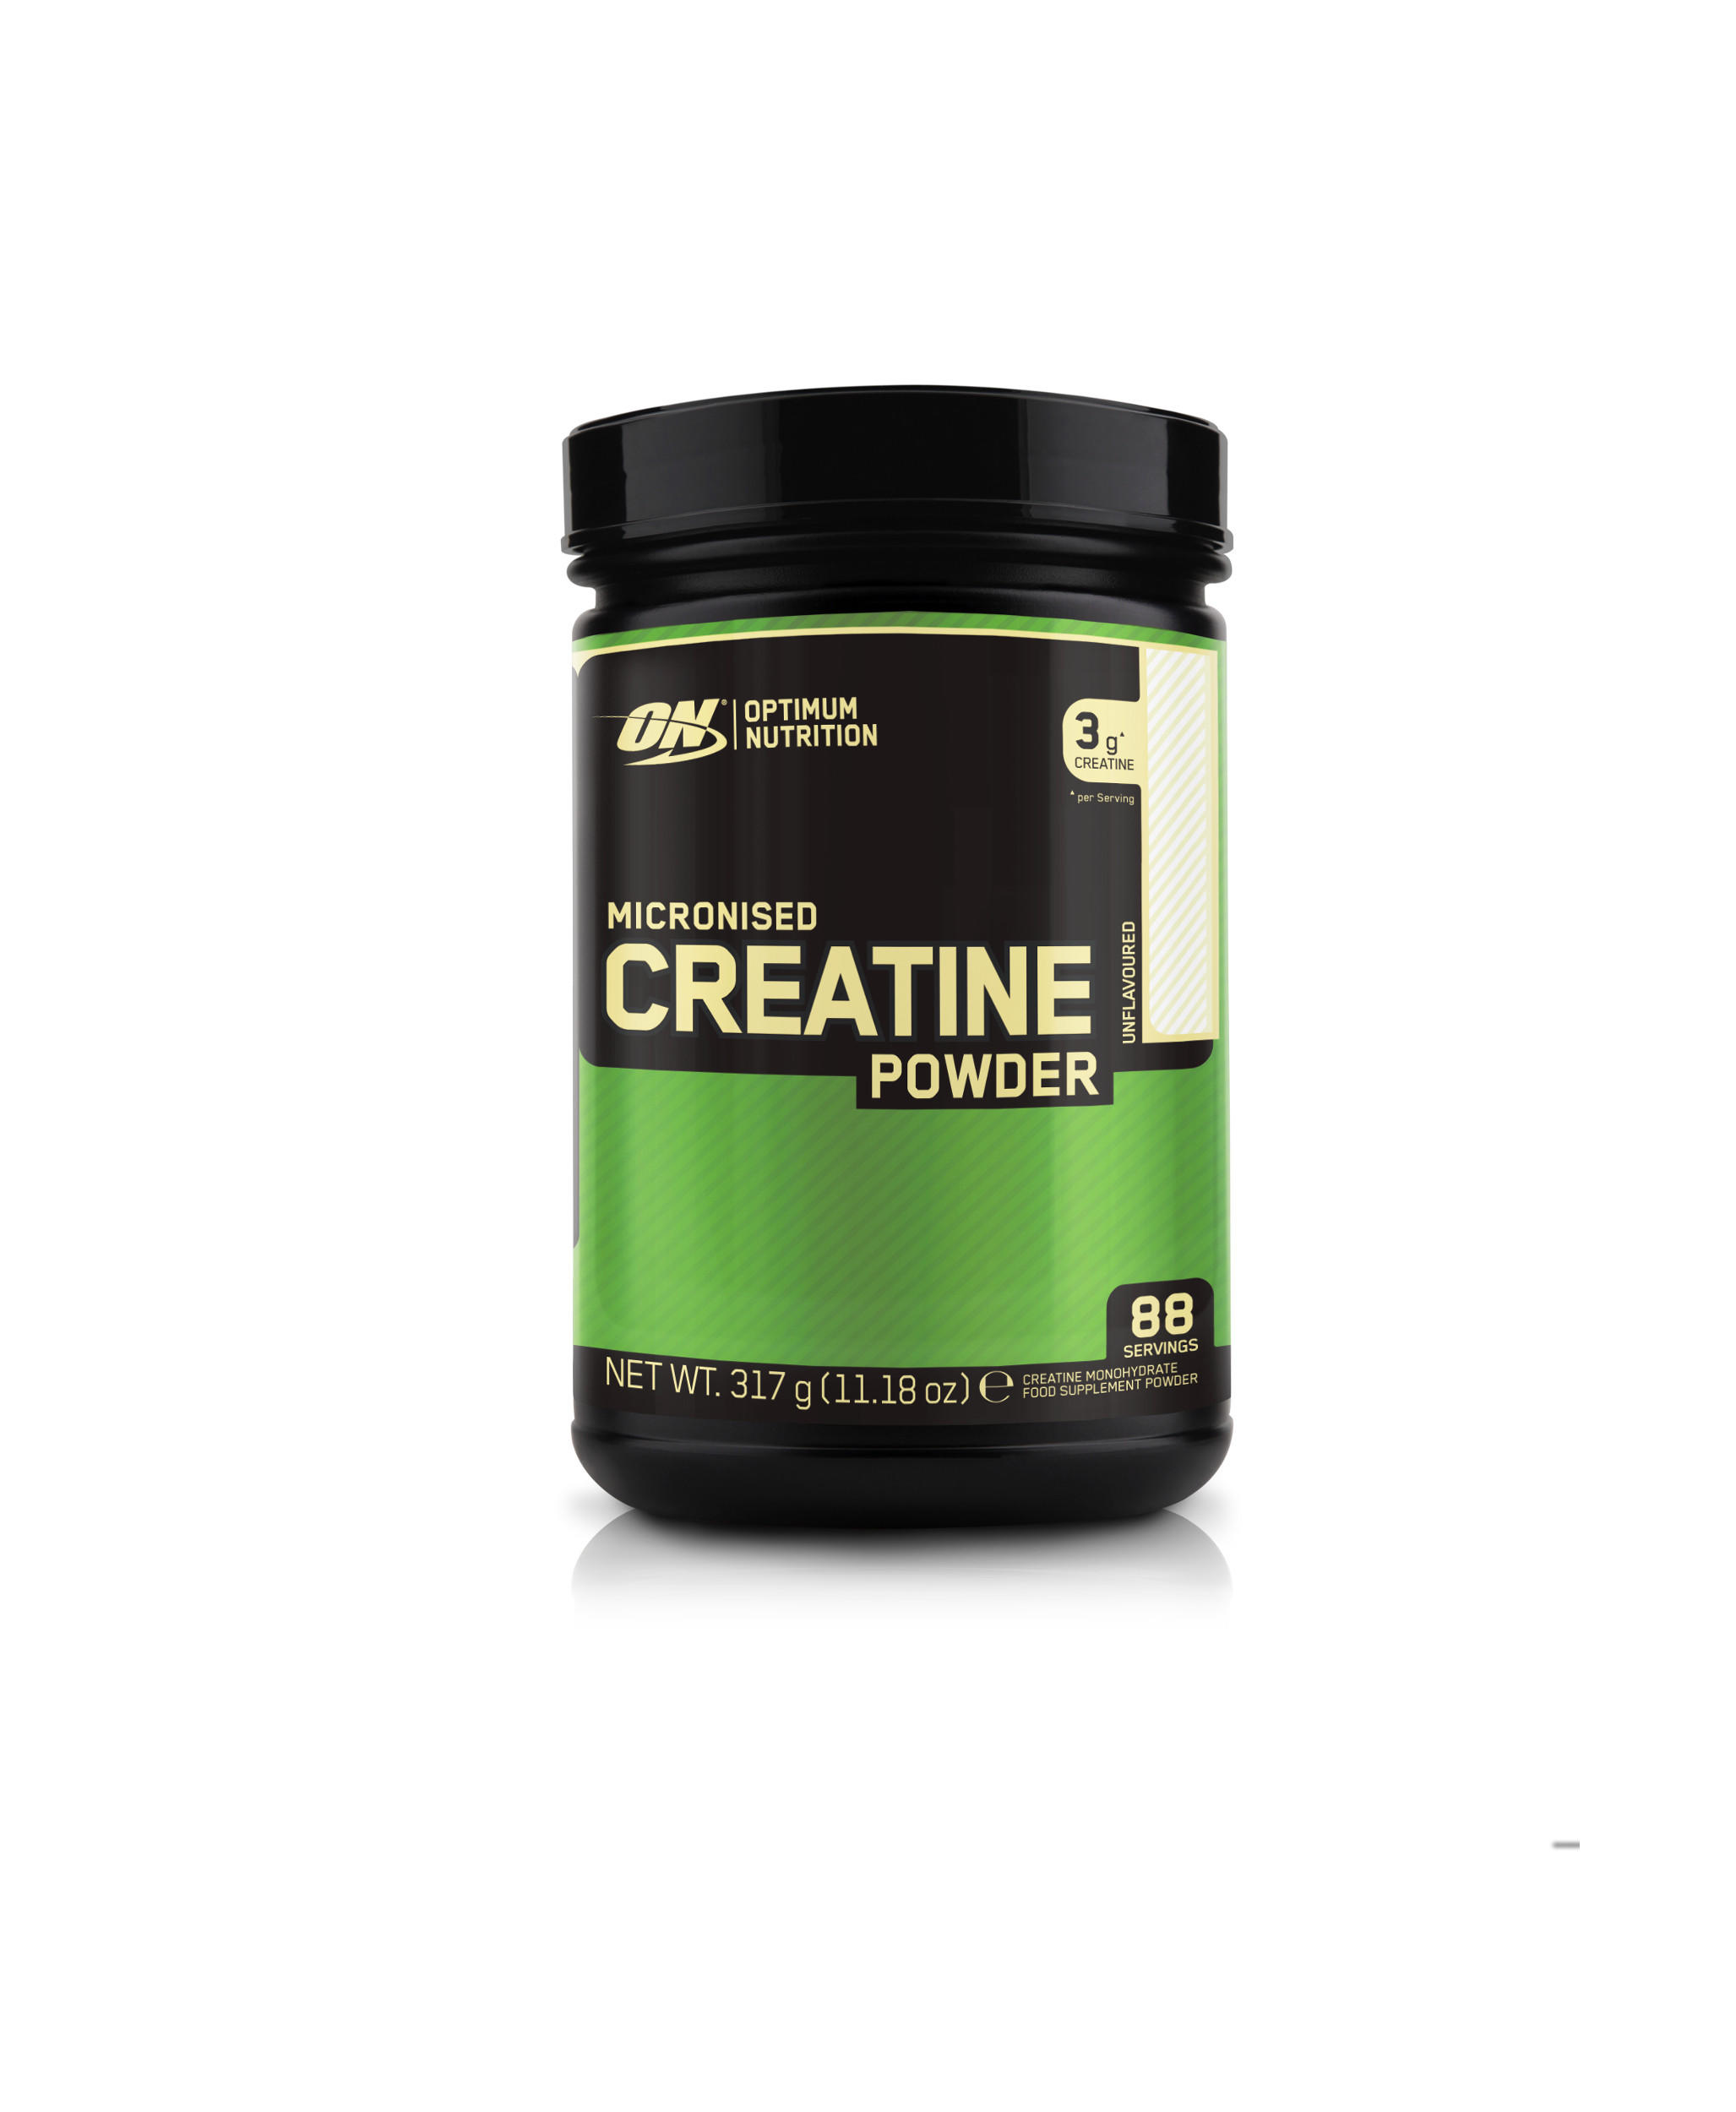 Creatină Optimum Pudră 317g de la OPTIMUM NUTRITION